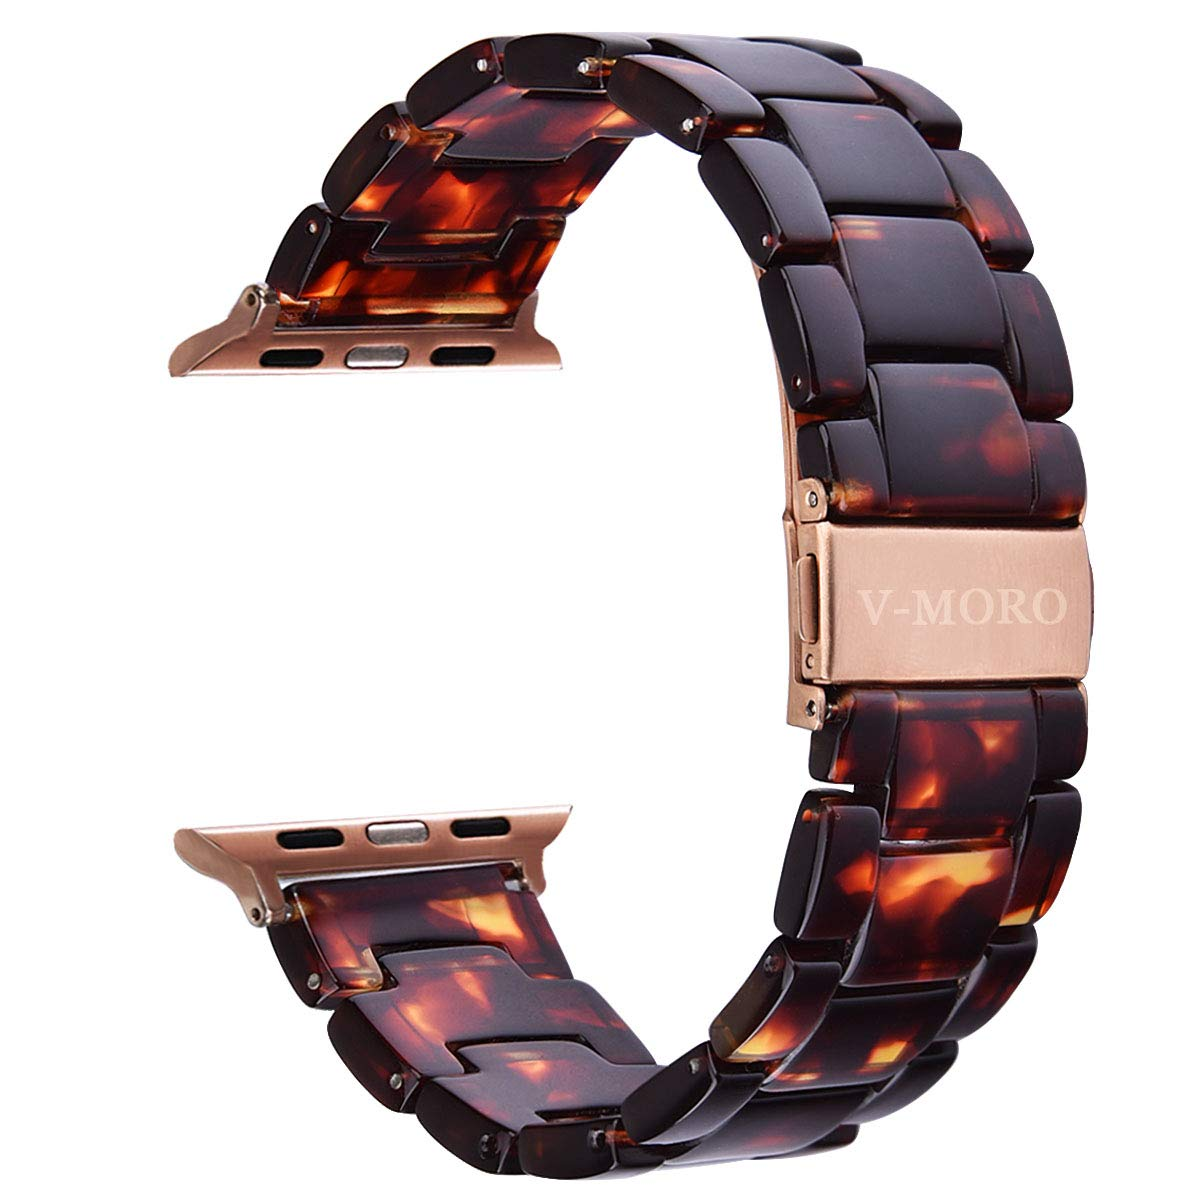 V-MORO Resin Strap Compatible with iWatch Band 38mm 40mm Series 4/3/2/1 Women Men with Stainless Steel Buckle, Apple Watch Replacement Wristband Strap(Tortoise-Tone, 38mm) by V-MORO